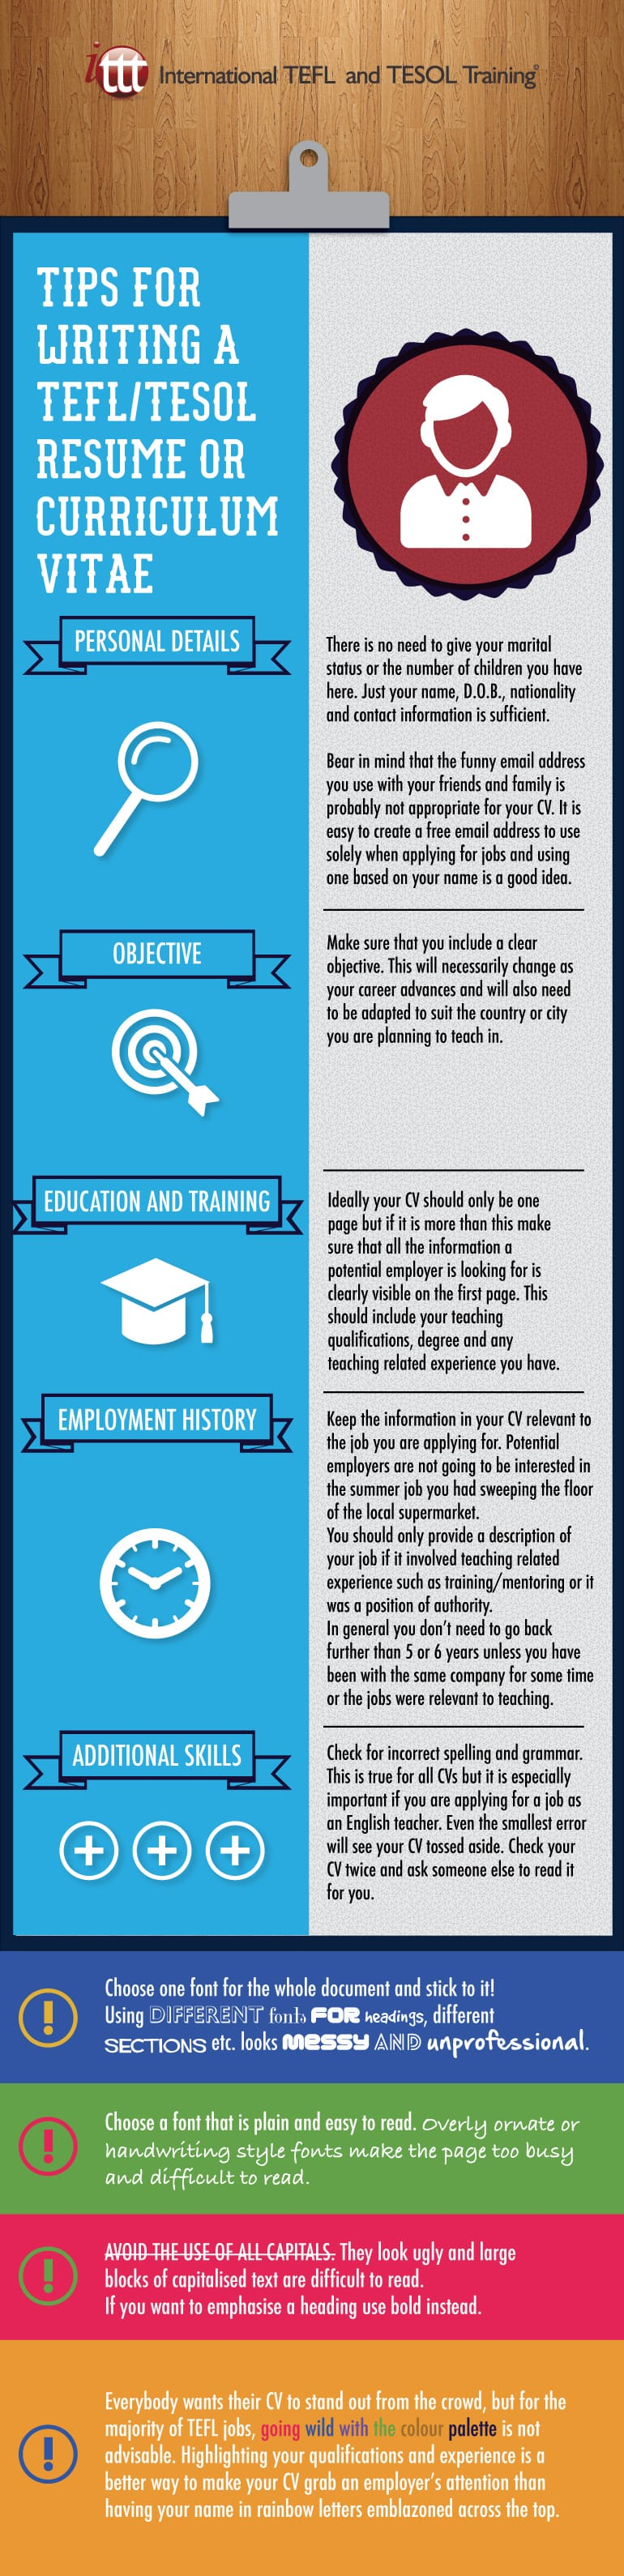 Tips For Writing A Tefl Tesol Resume Curriculum Vitae Infographic